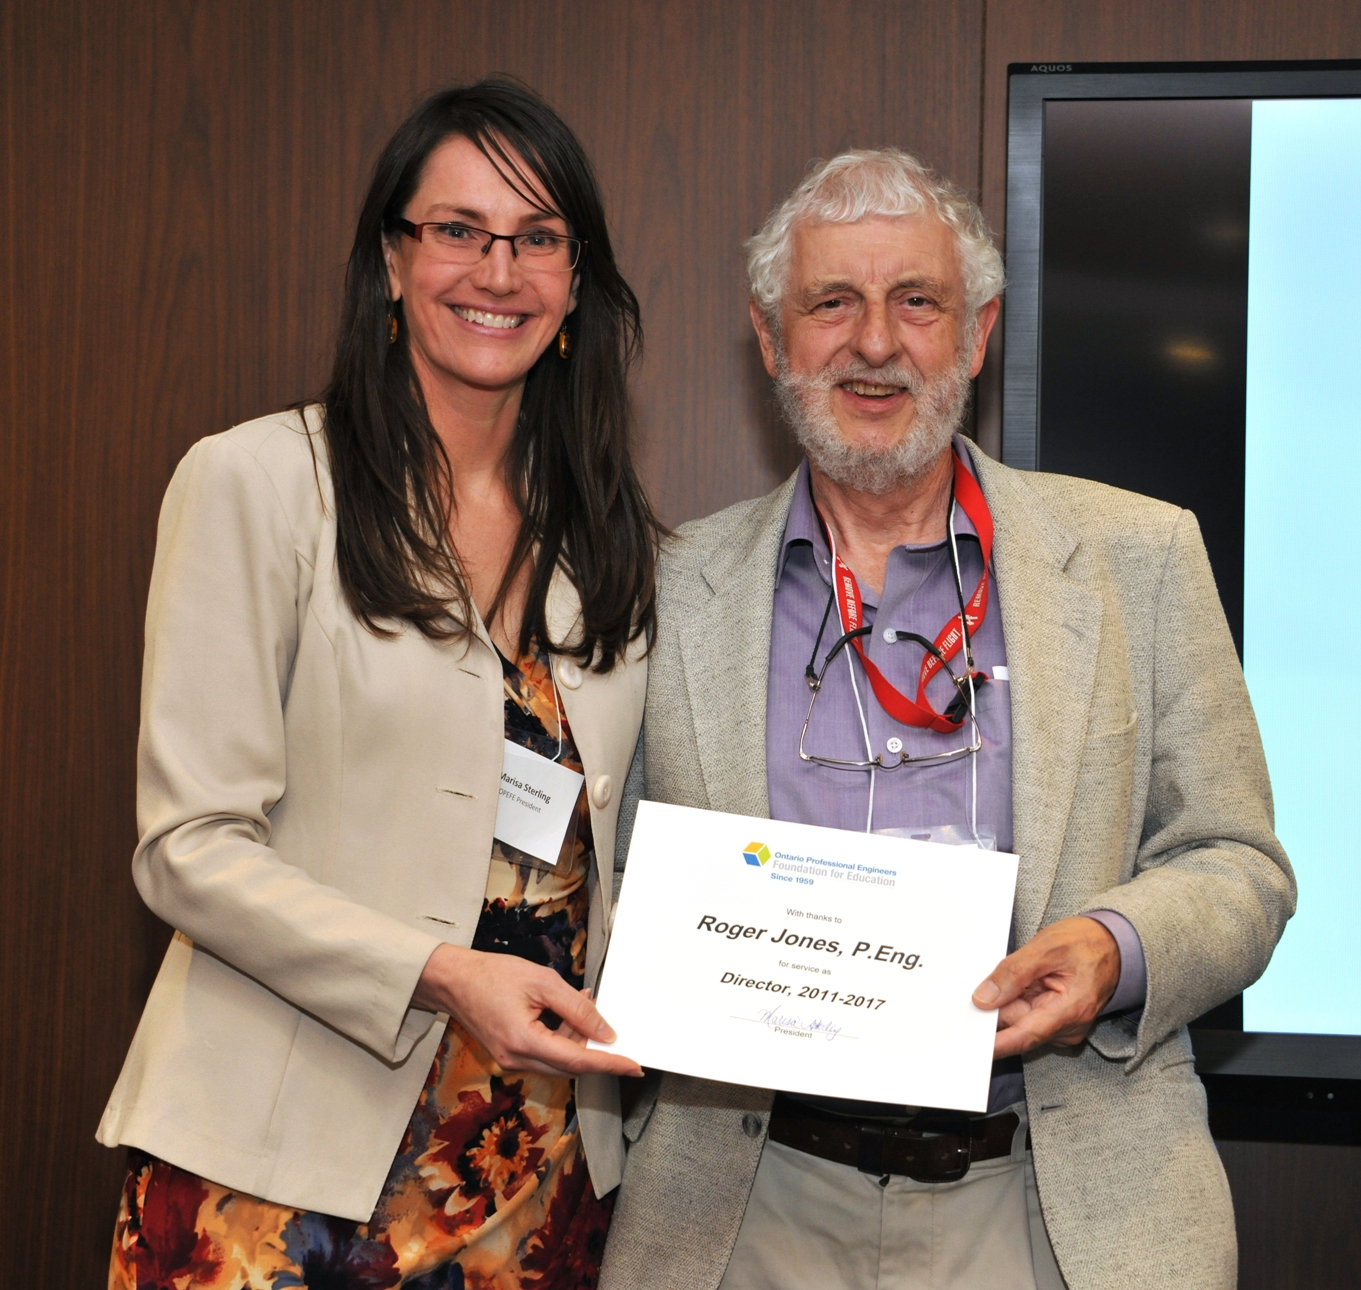 12 retiring director Roger Jones receives certificate of appreciation from Marisa Sterling